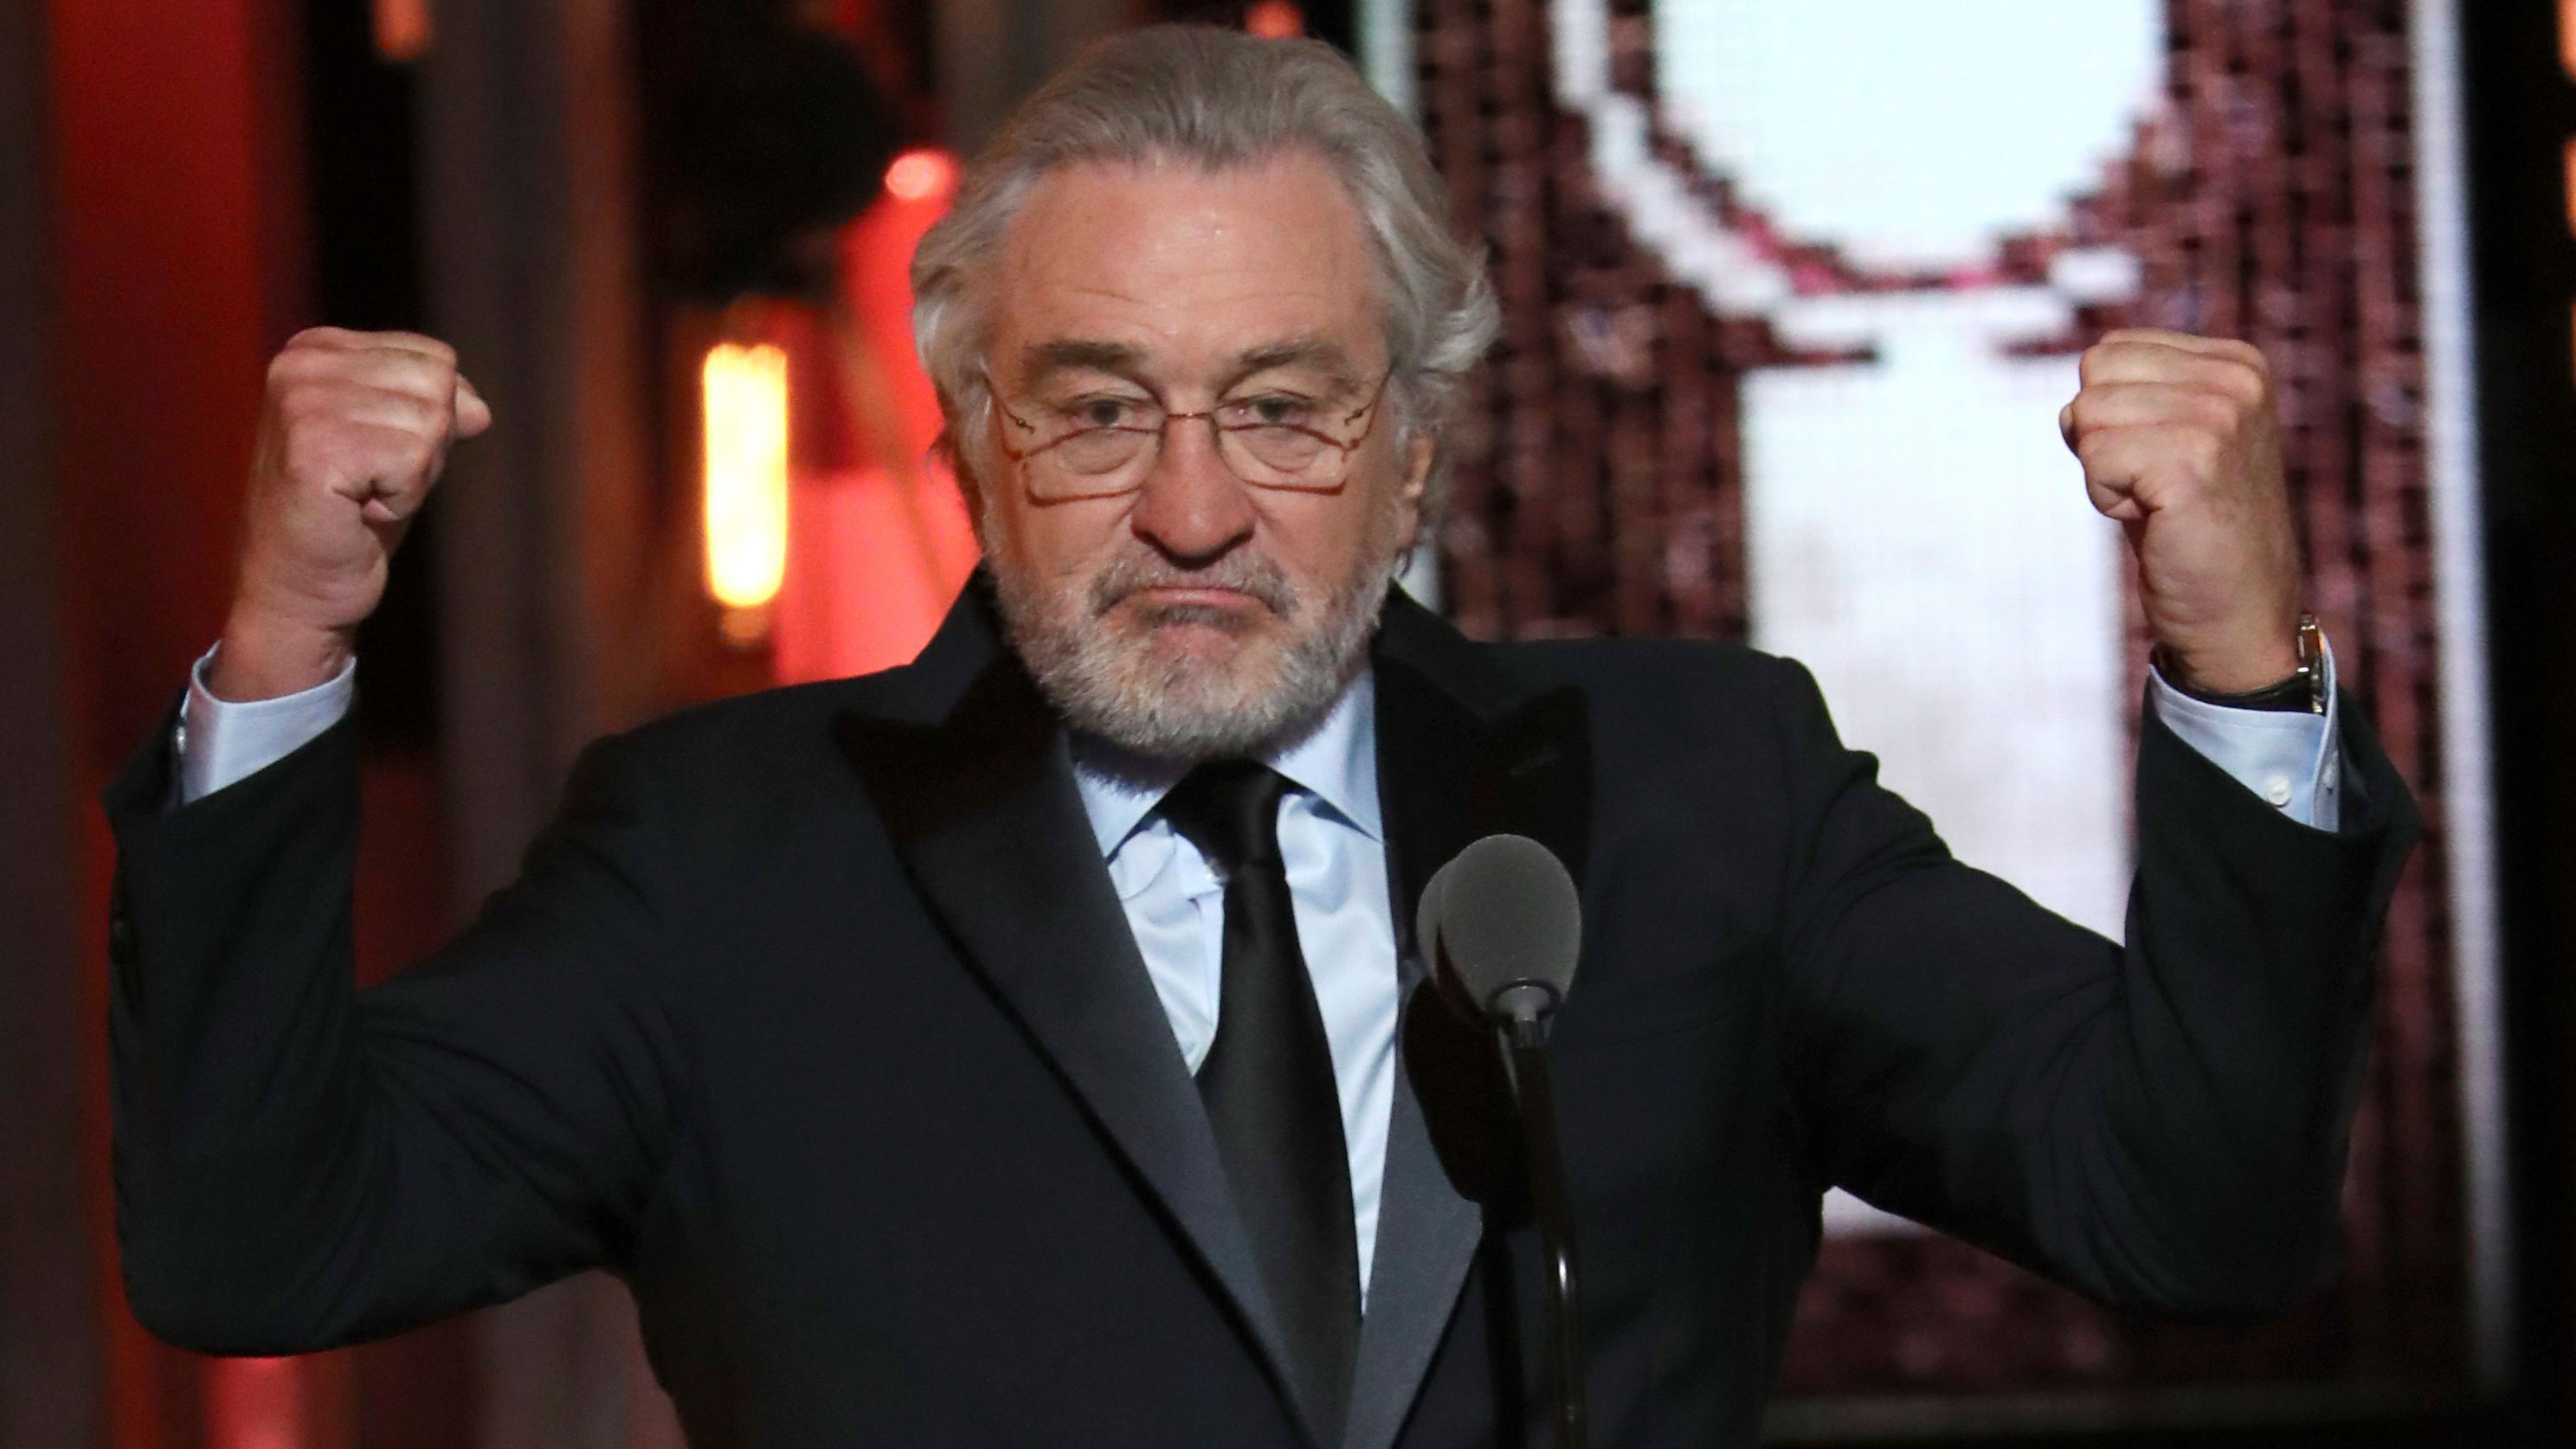 Actor Robert De Niro apologizes to Canada for